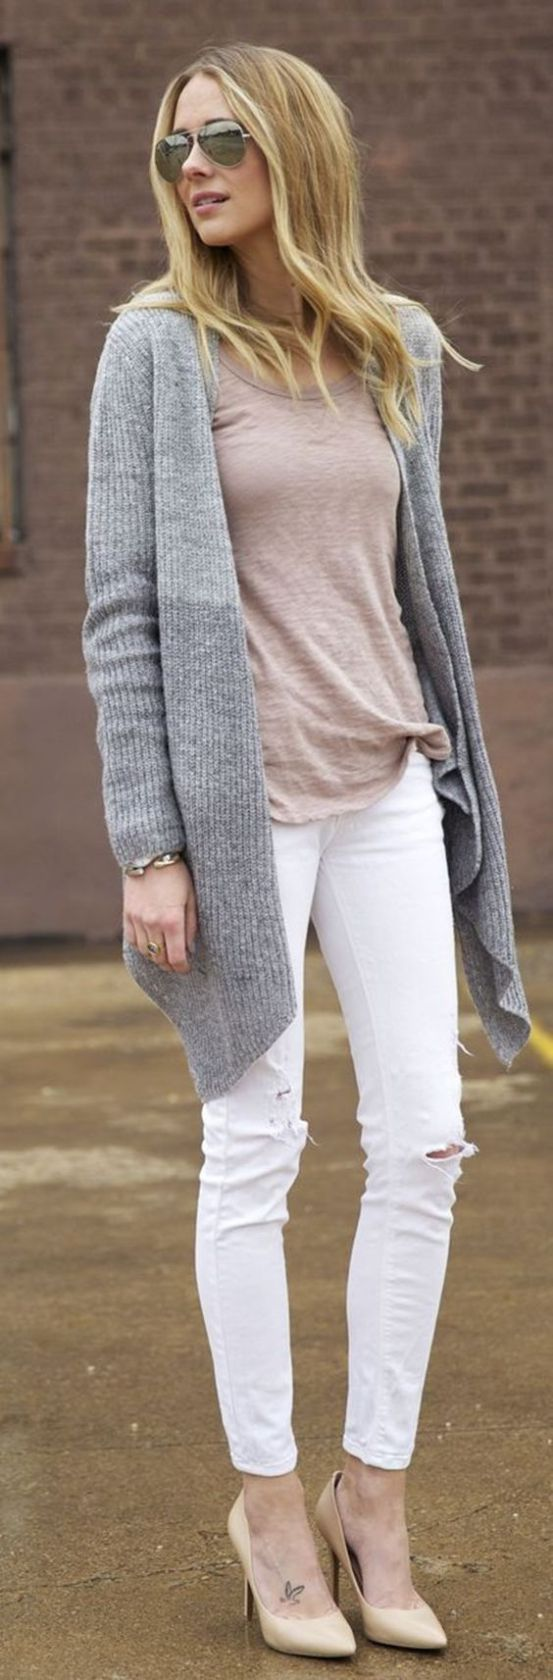 30 lovely cardigan outfit ideas this winter | cardigan outfits